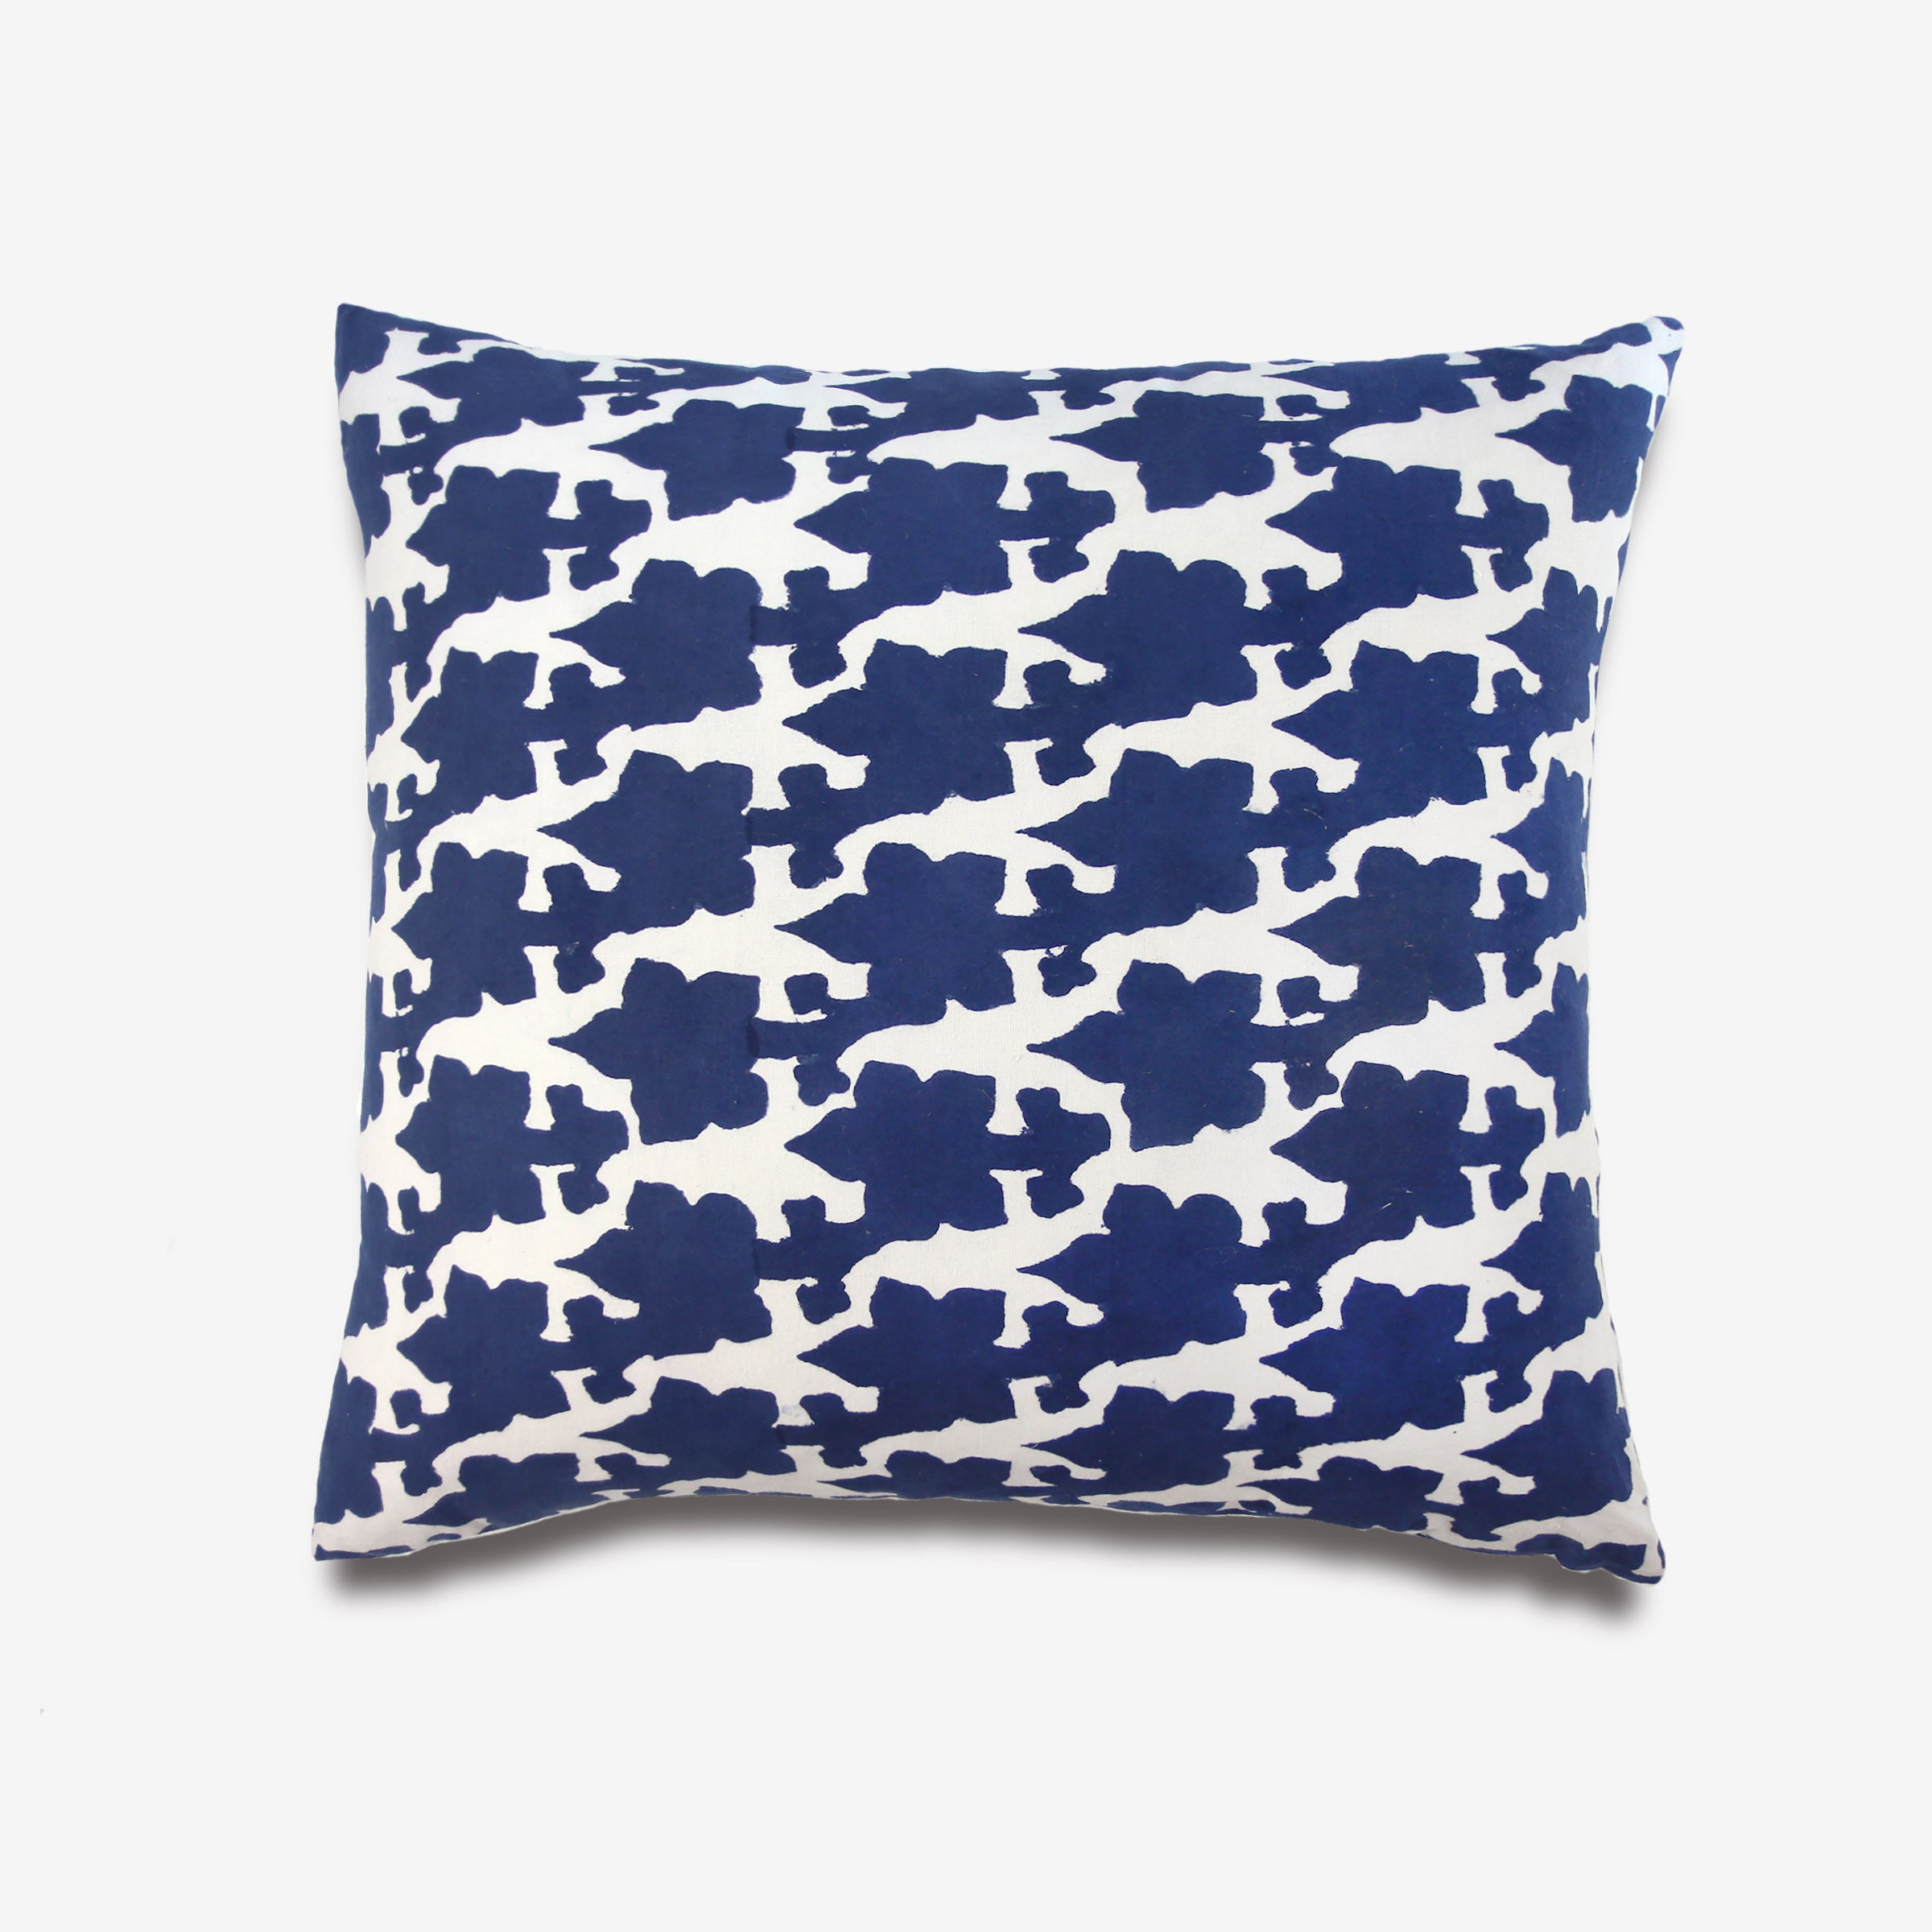 Chango & Co Blotch Floral Pillow